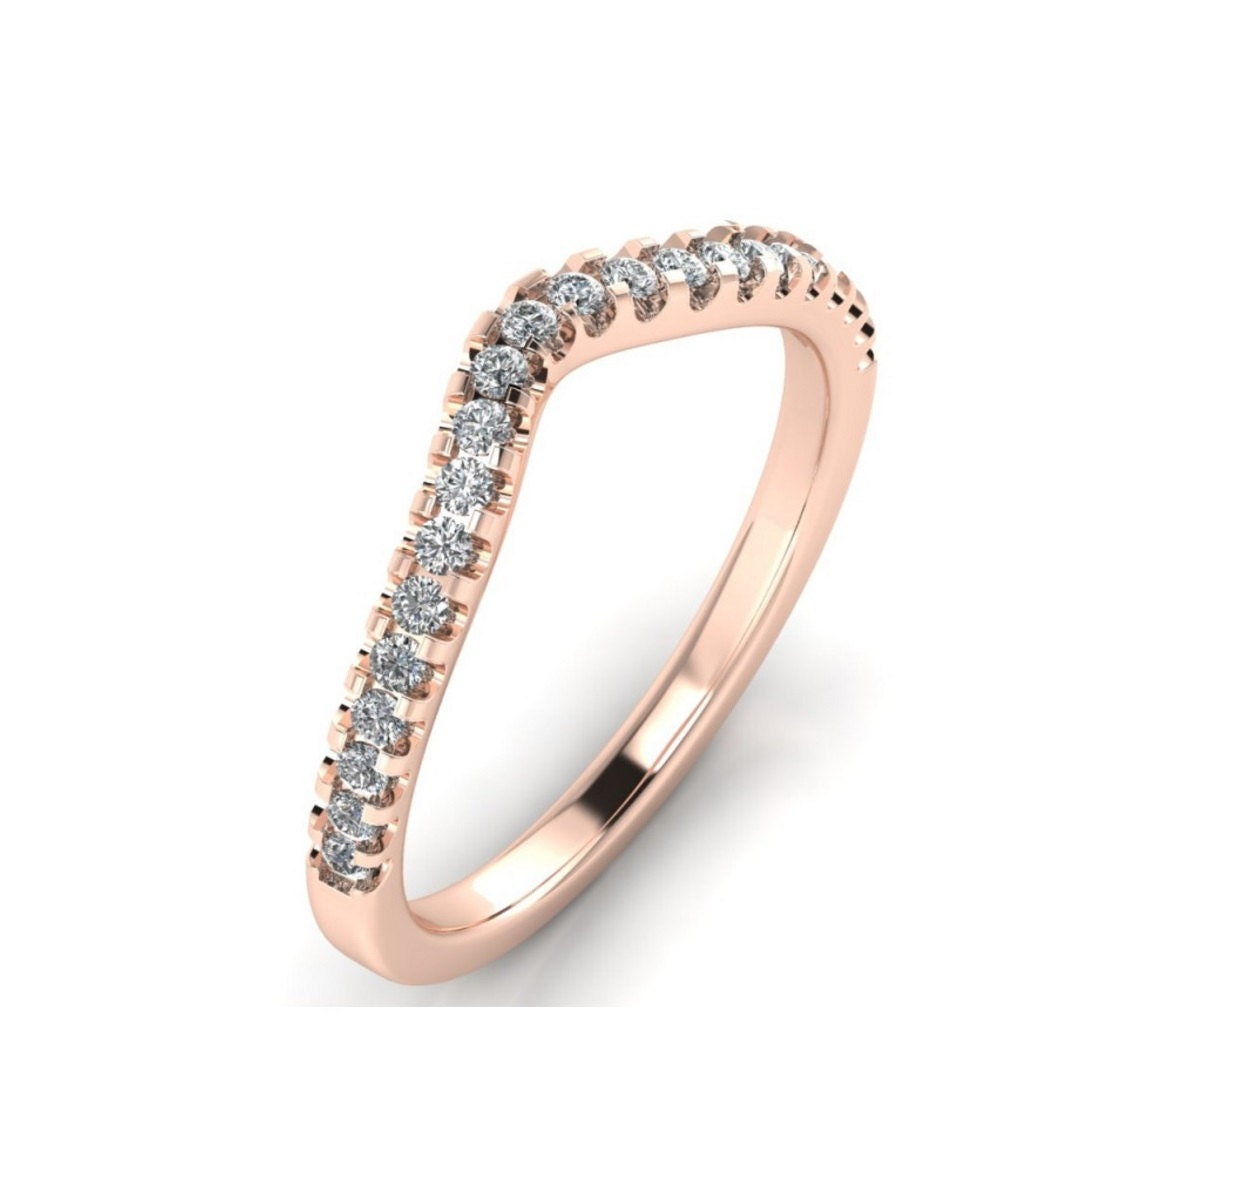 14K Rose Gold Curved Diamond Wedding Band For Women 020